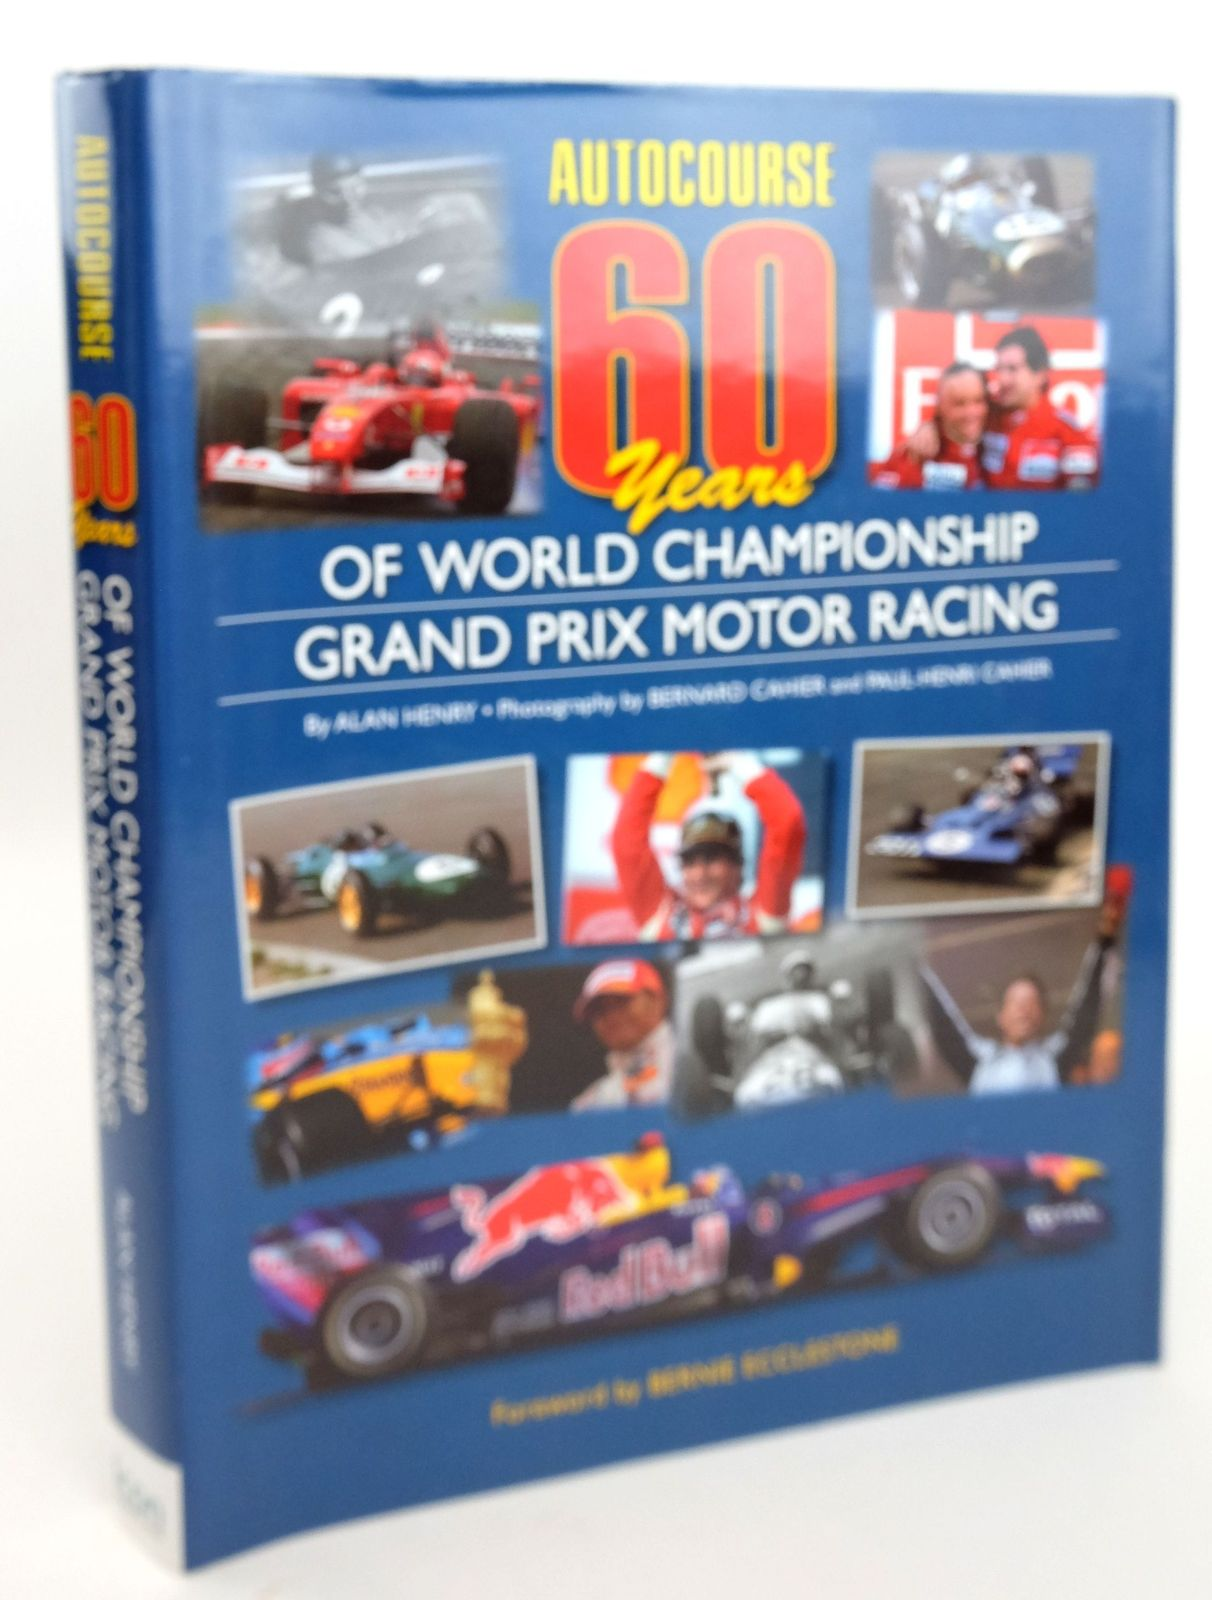 Photo of AUTOCOURSE 60 YEARS OF WORLD CHAMPIONSHIP GRAND PRIX MOTOR RACING written by Henry, Alan published by Icon Publishing Limited (STOCK CODE: 1819973)  for sale by Stella & Rose's Books